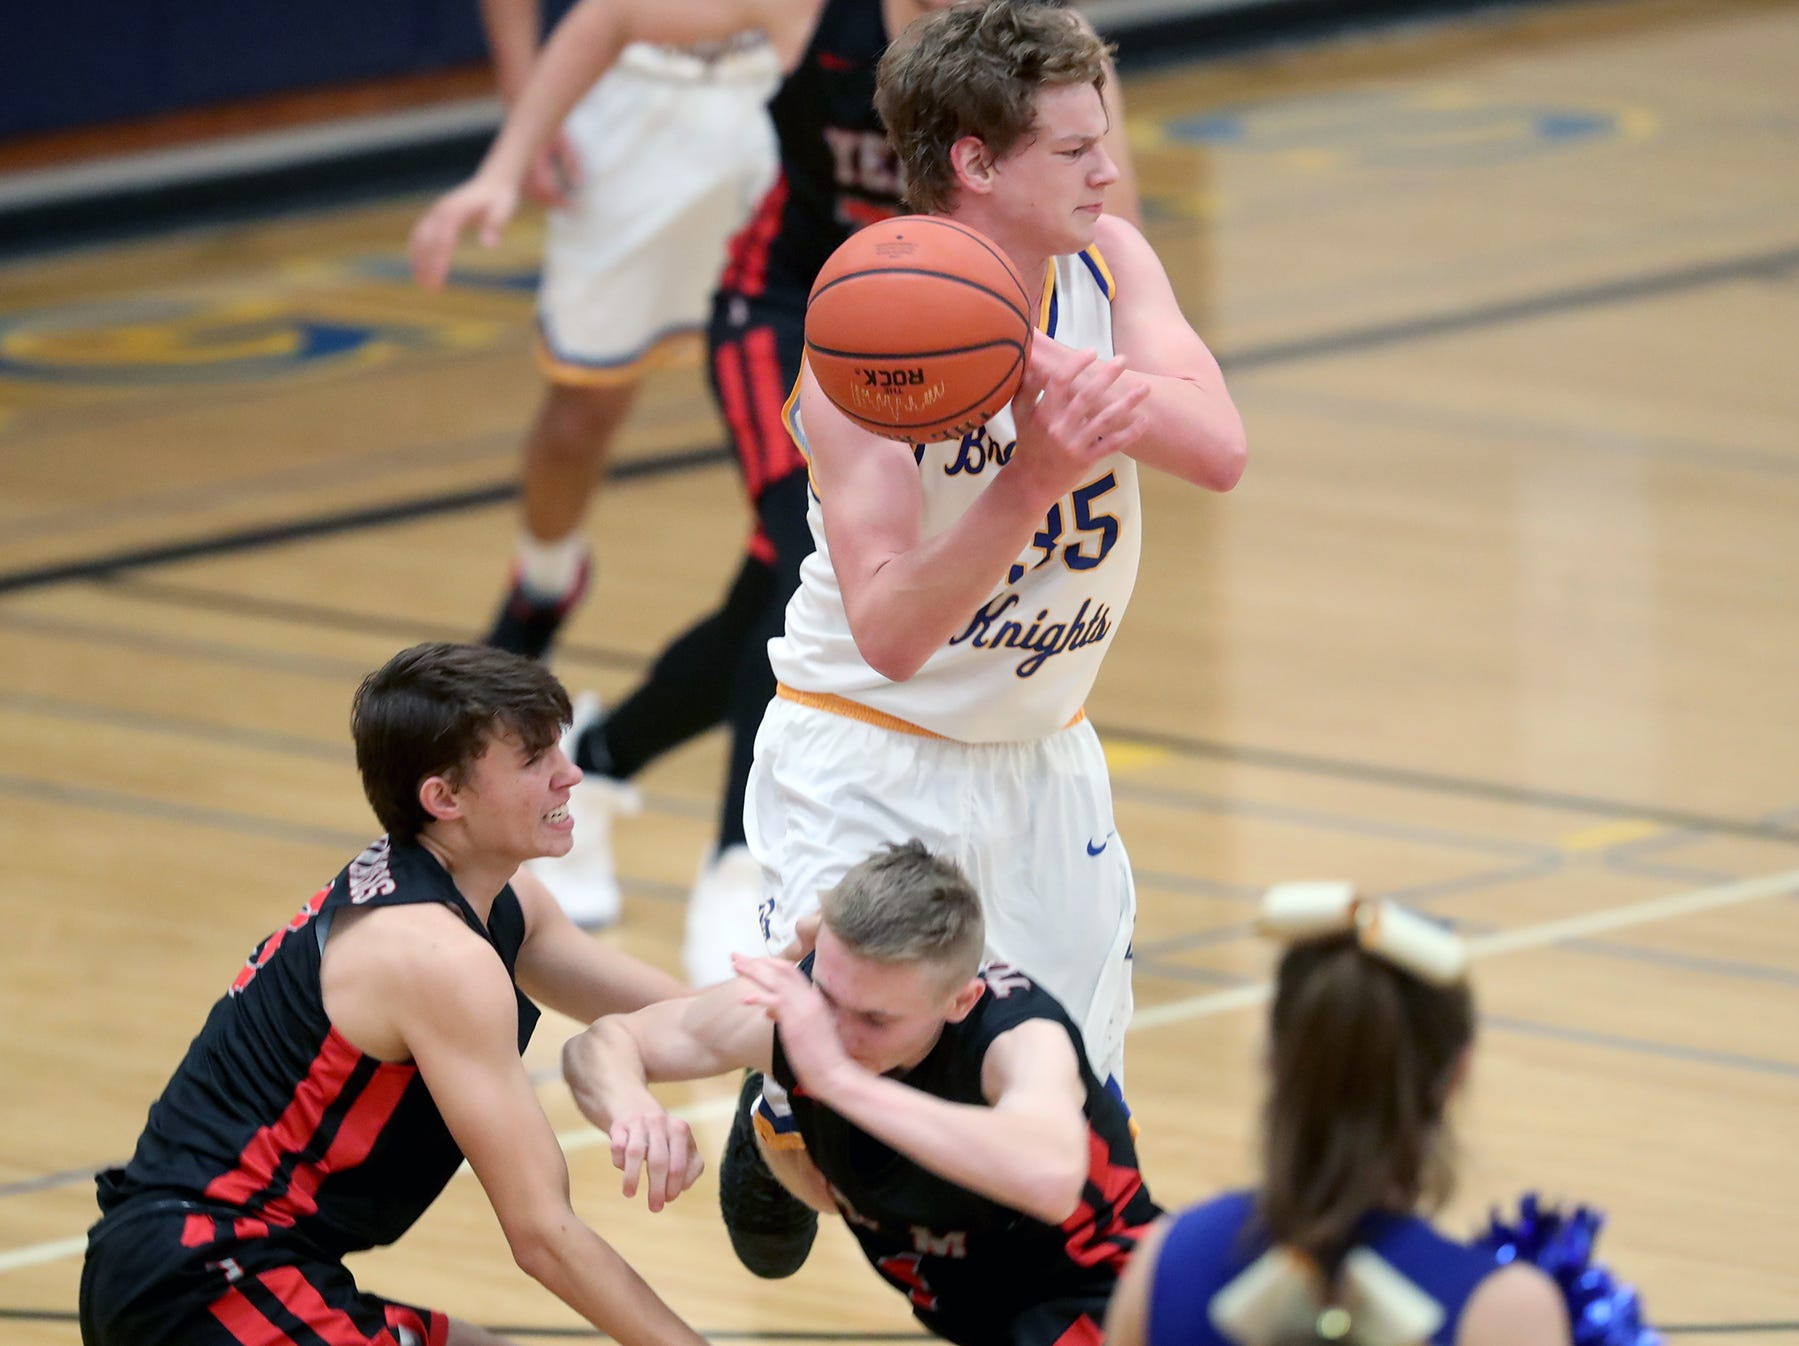 Bremerton played a boys basketball game against Yelm at Bremerton on Tuesday, November 27, 2018.